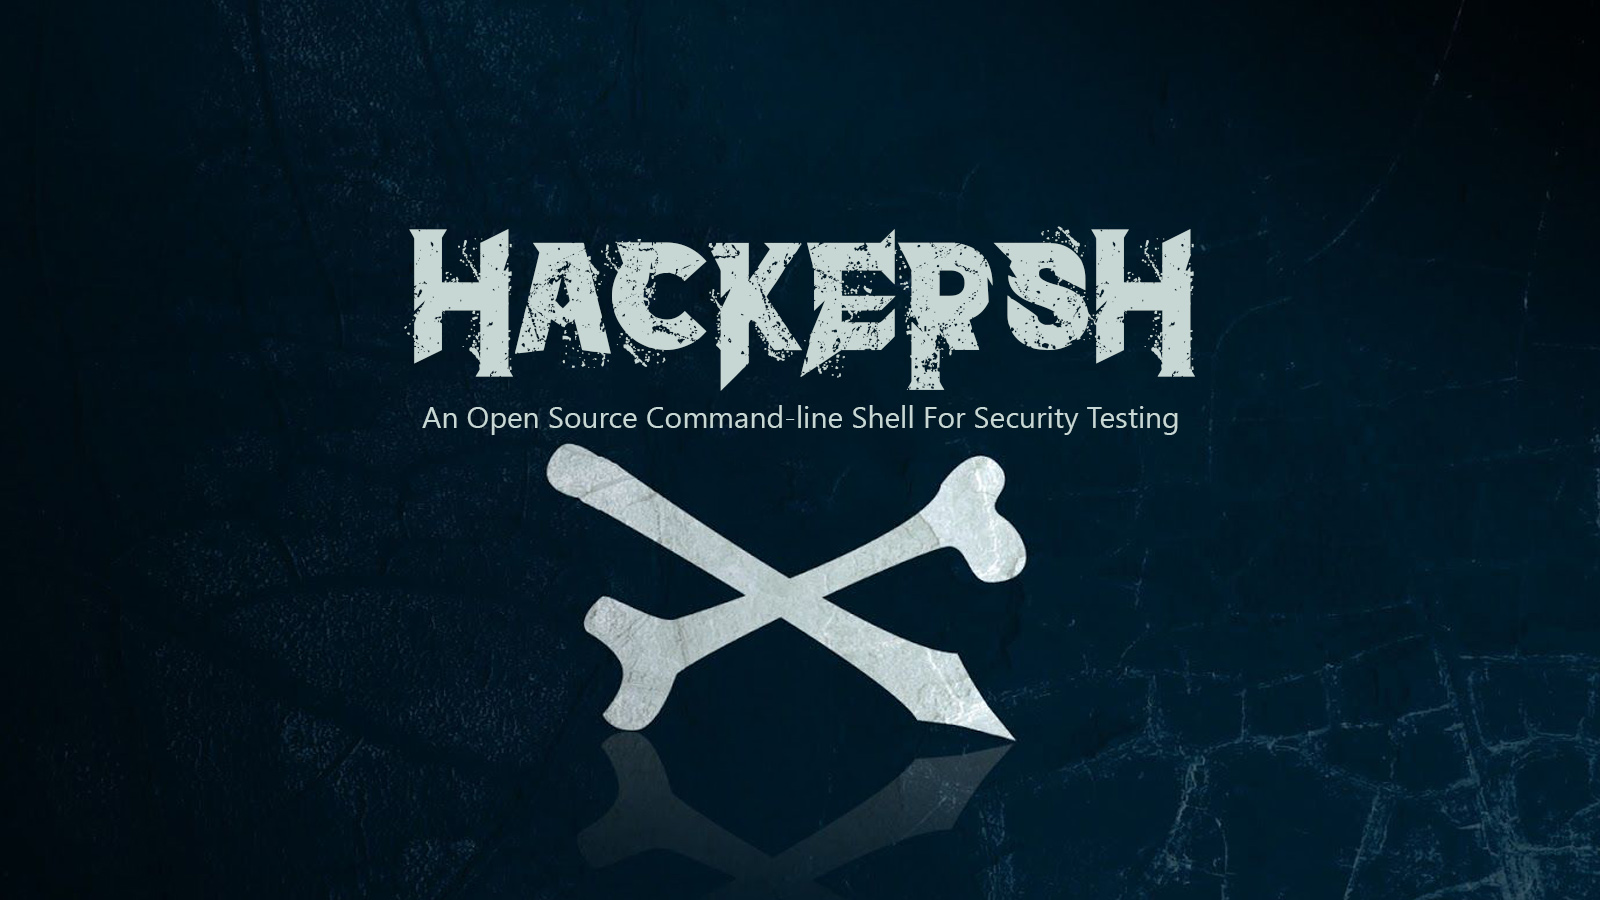 Hackersh Hacker Shell - Command-line Shell For Security Testing